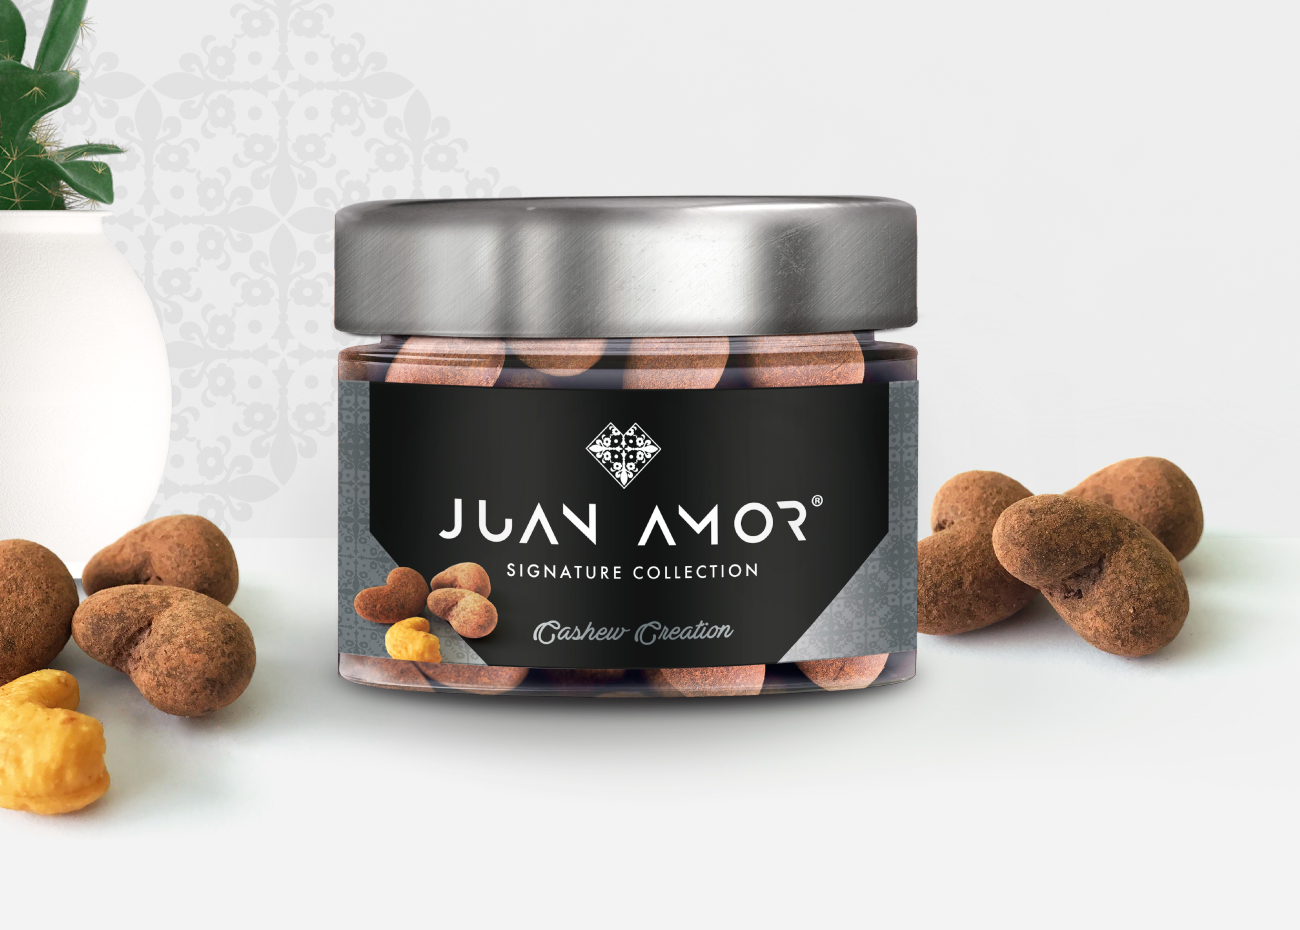 Juan Amor Cashew creation